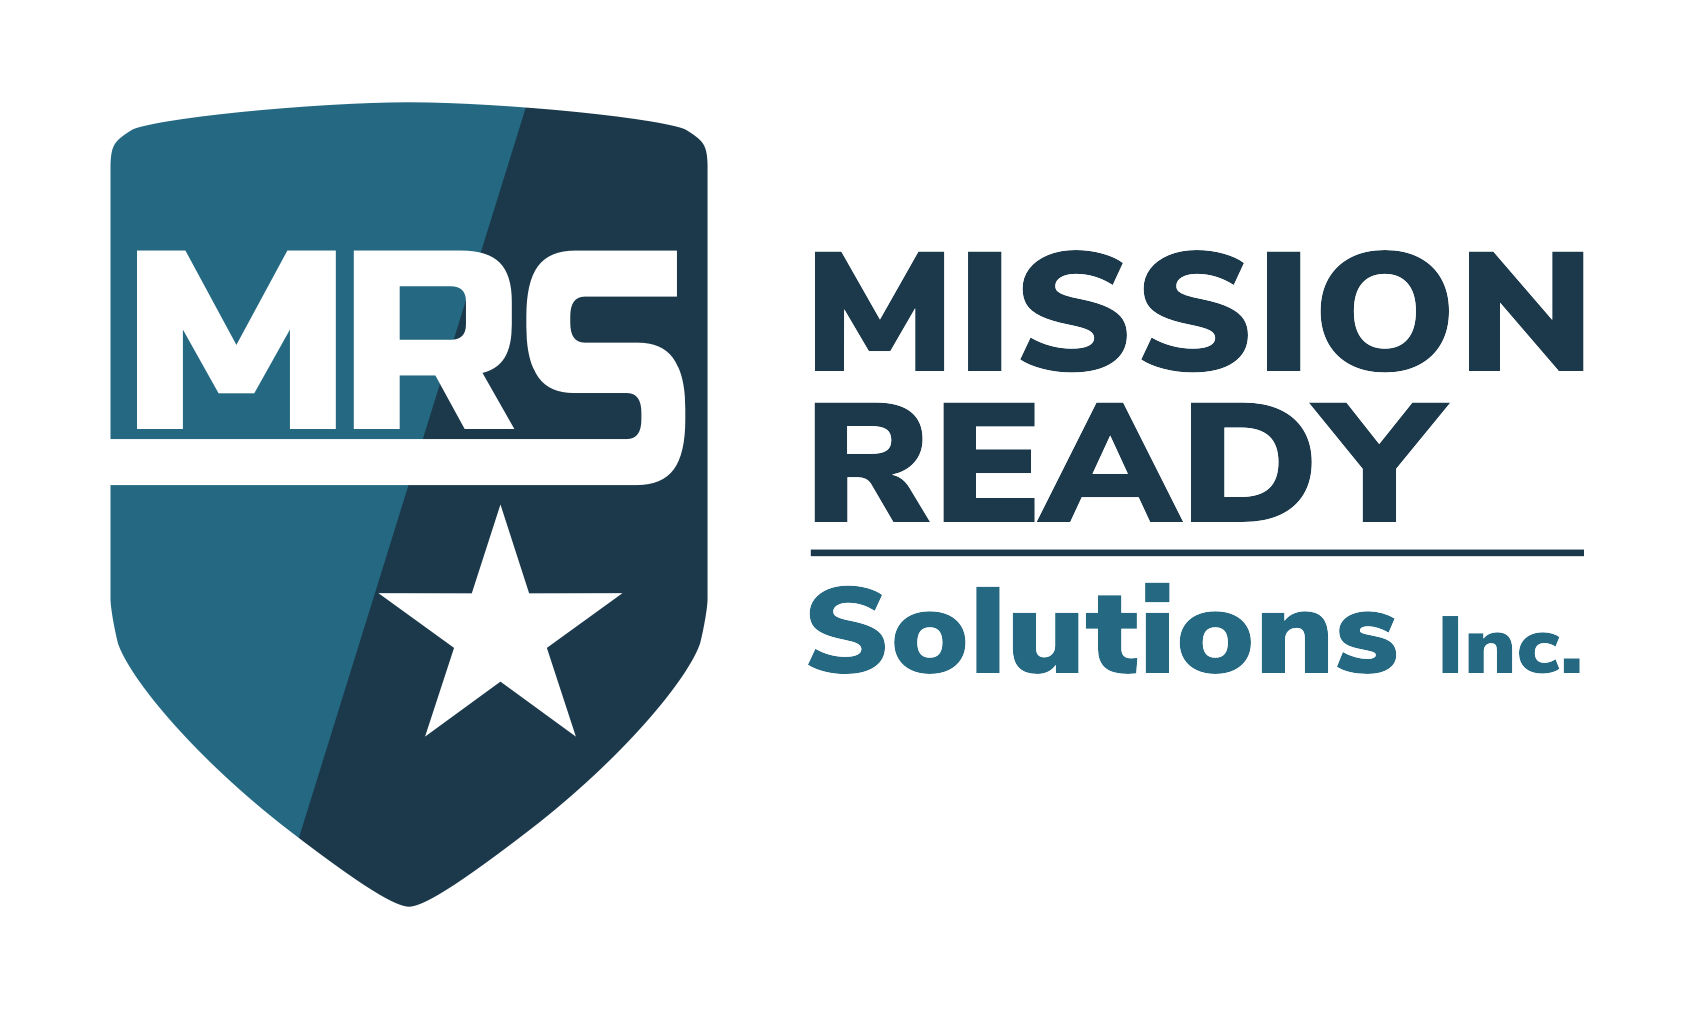 Mission Ready Outlines Progressive Growth Plan for Government Contracting Division, Elaborates on GSA Schedule Program